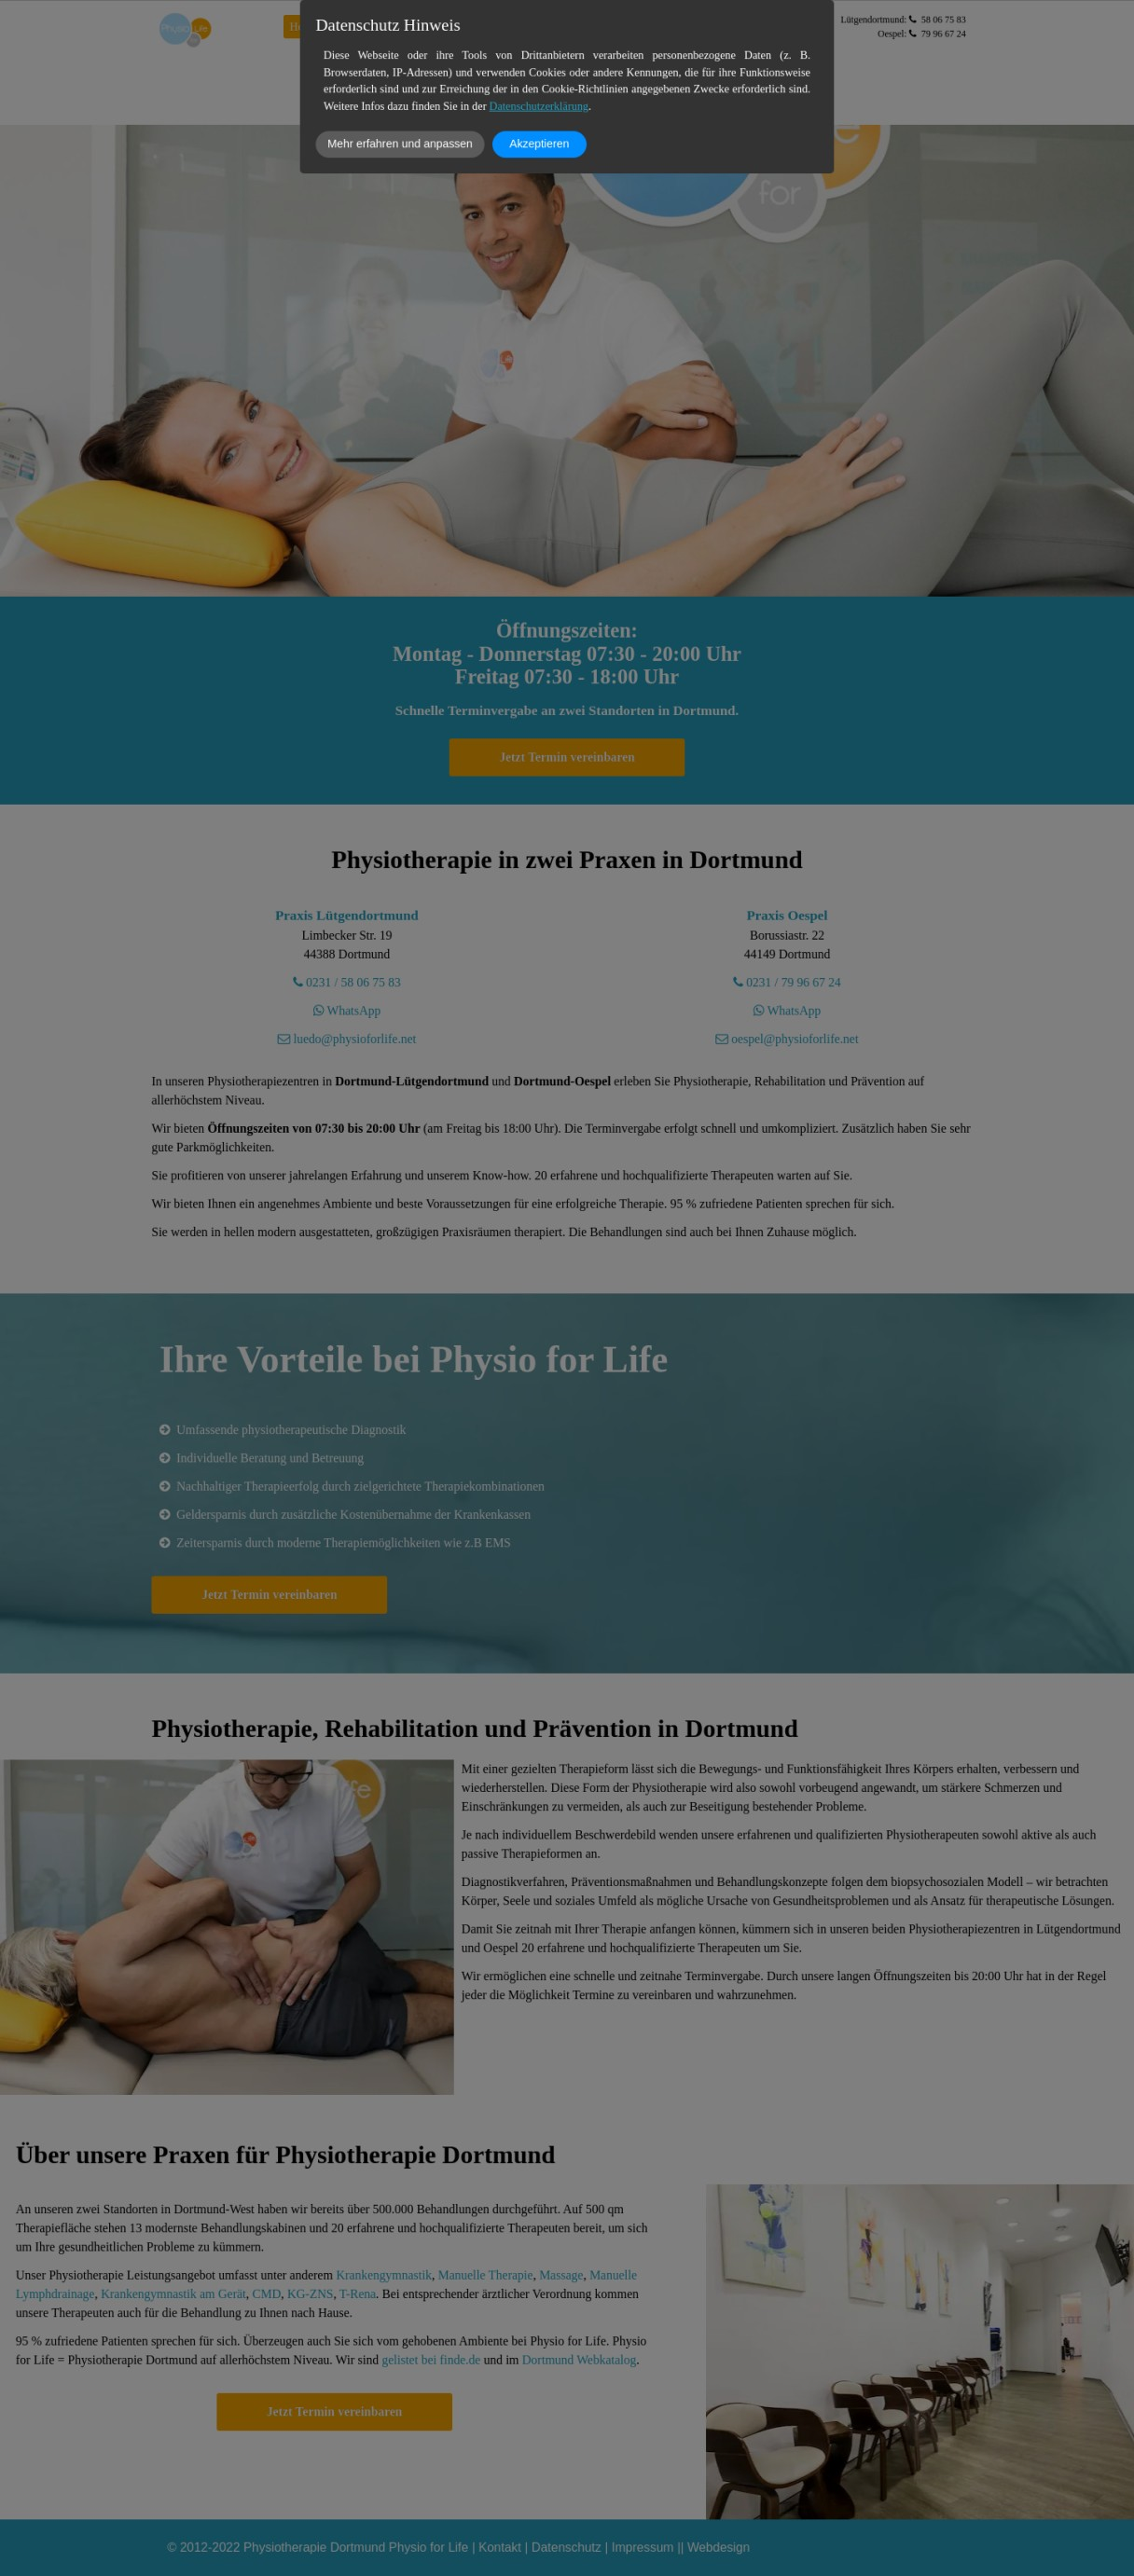 Physiotherapie in Dortmund Physio for Life